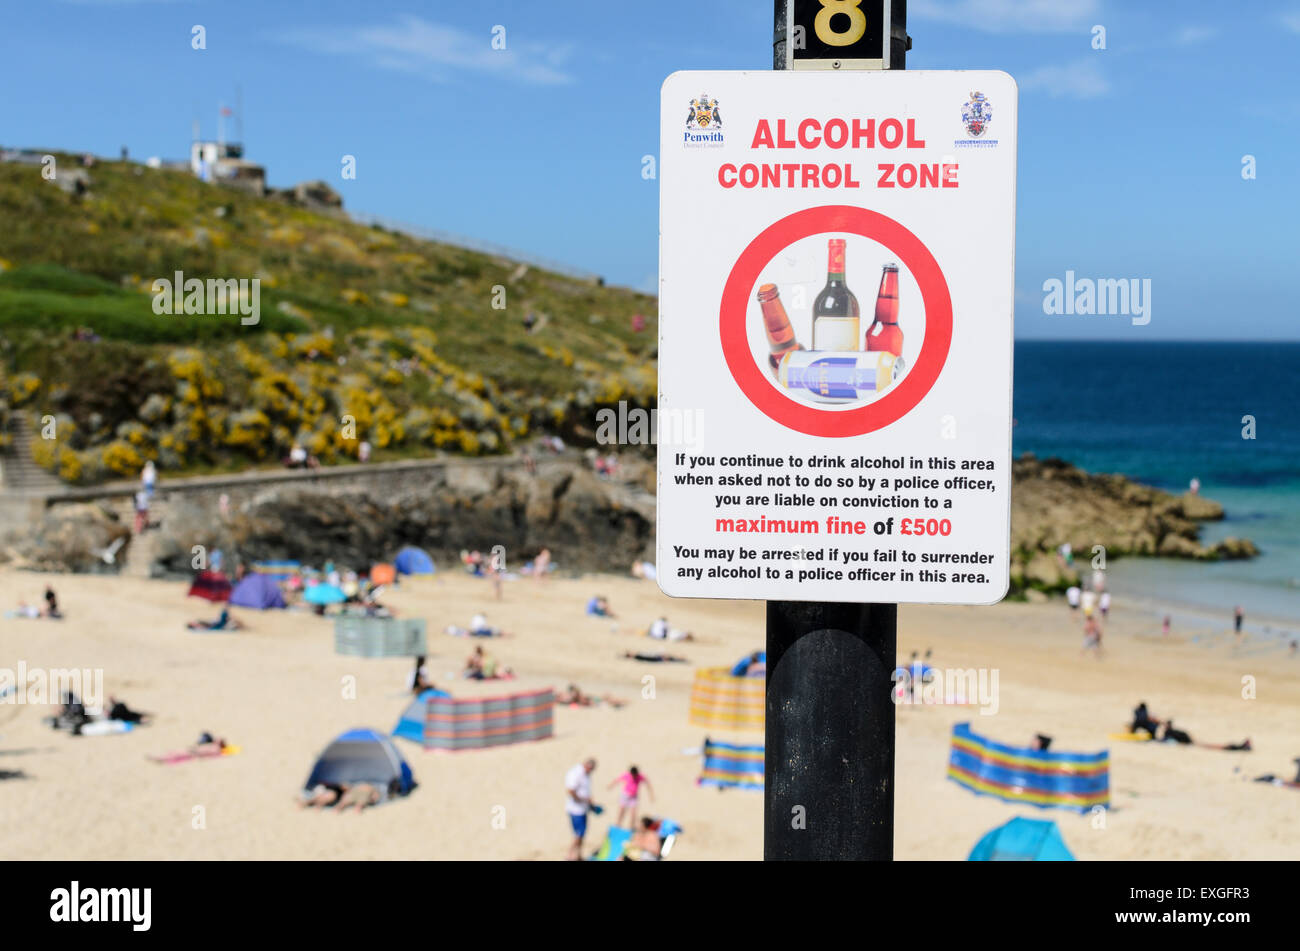 An Alcohol Control Zone sign aimed at controlling open air drinking at Porthgwidden Beach, St Ives, Cornwall, UK. - Stock Image